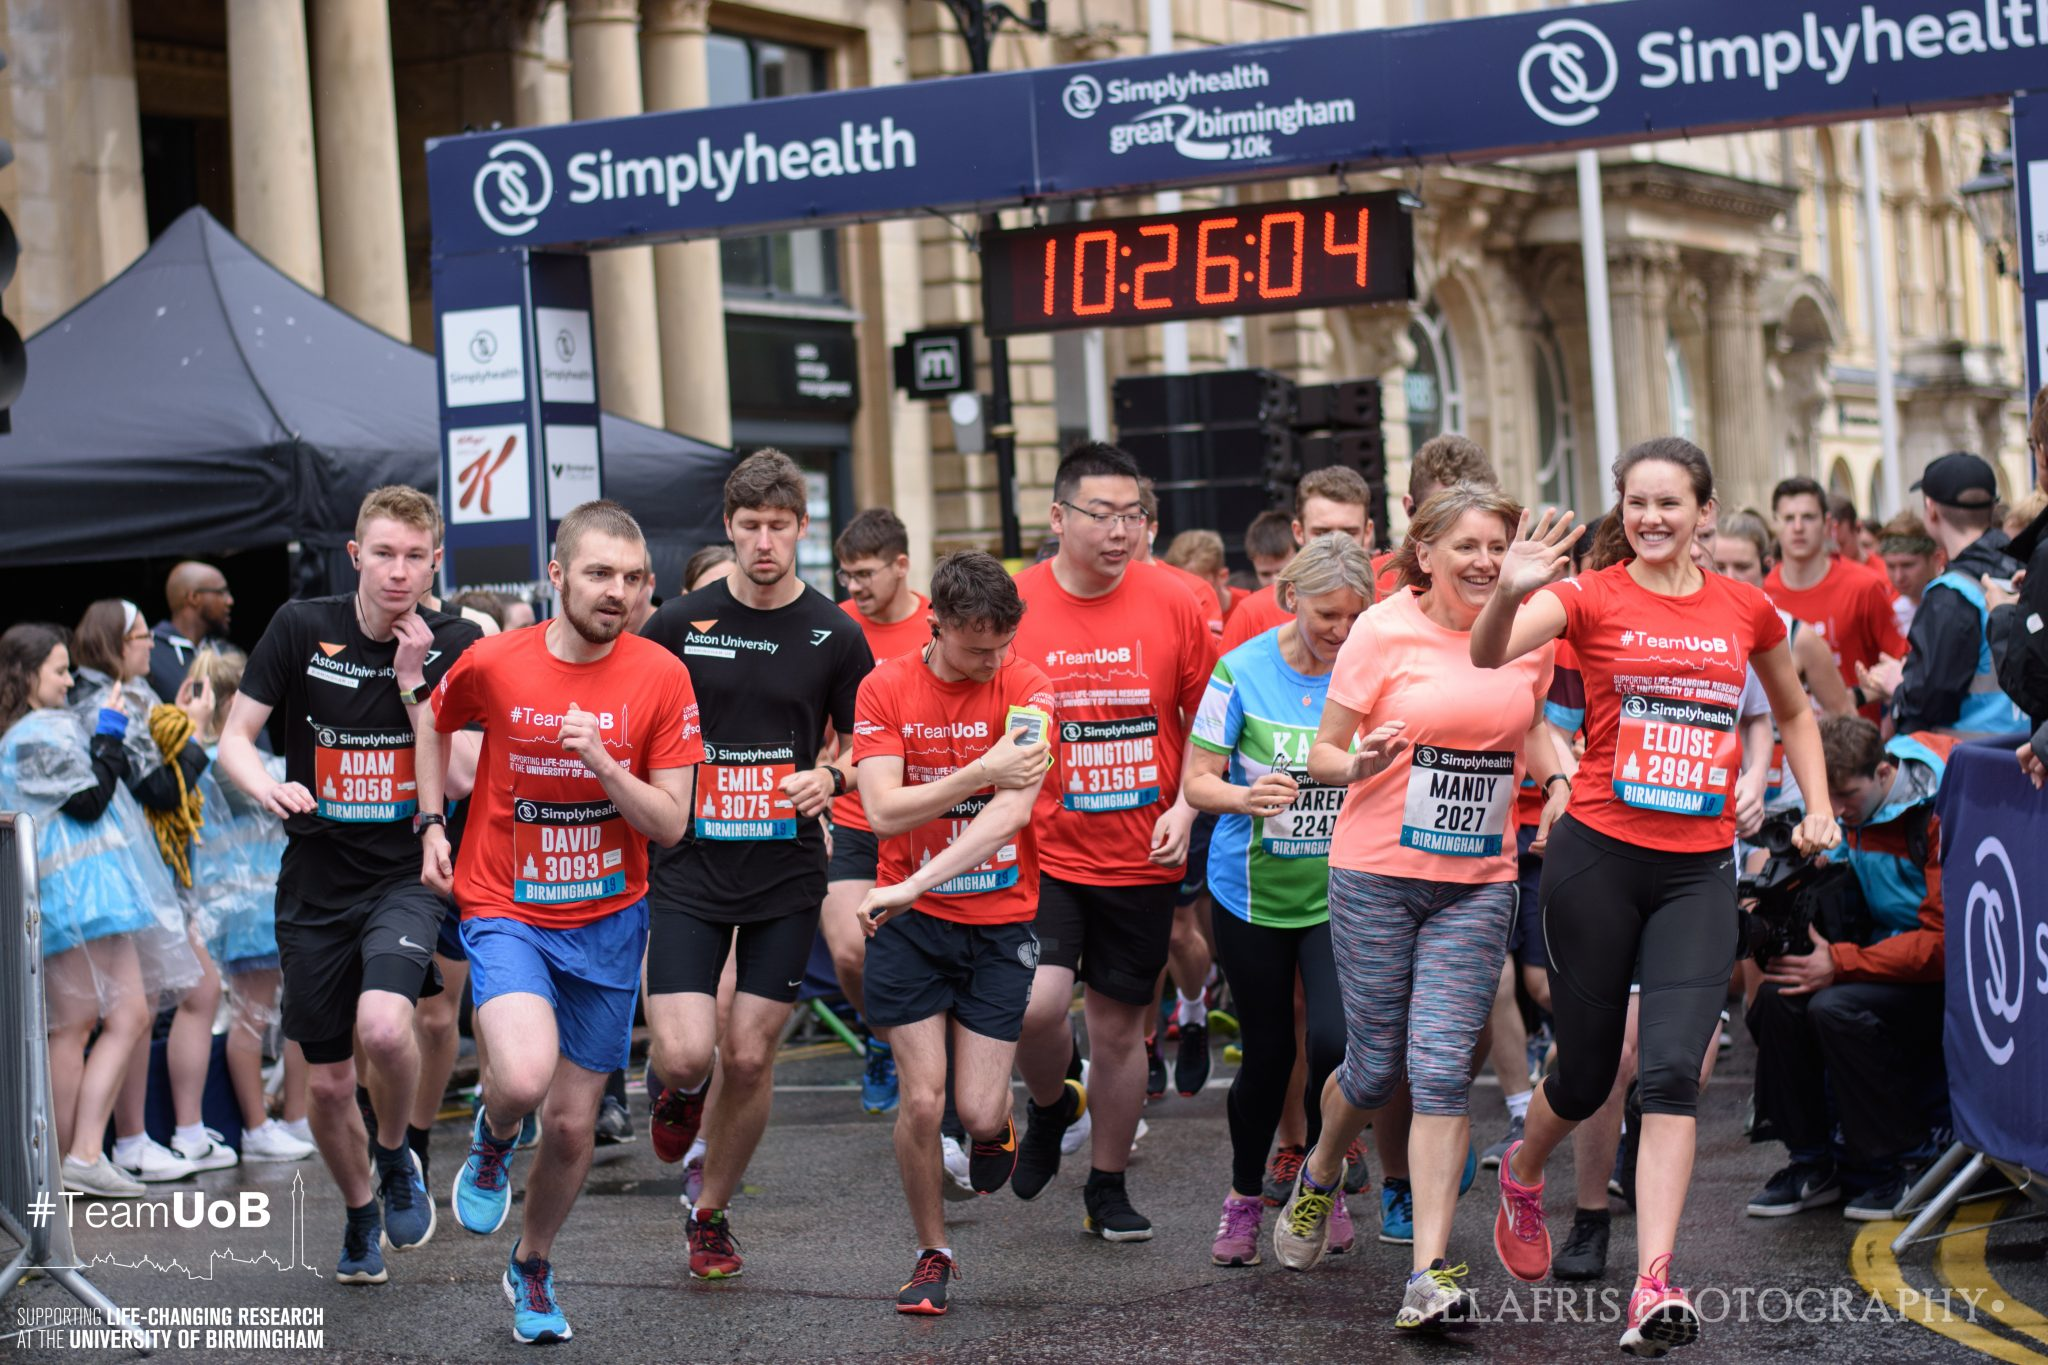 A group of runners running the Great Birmingham 10k